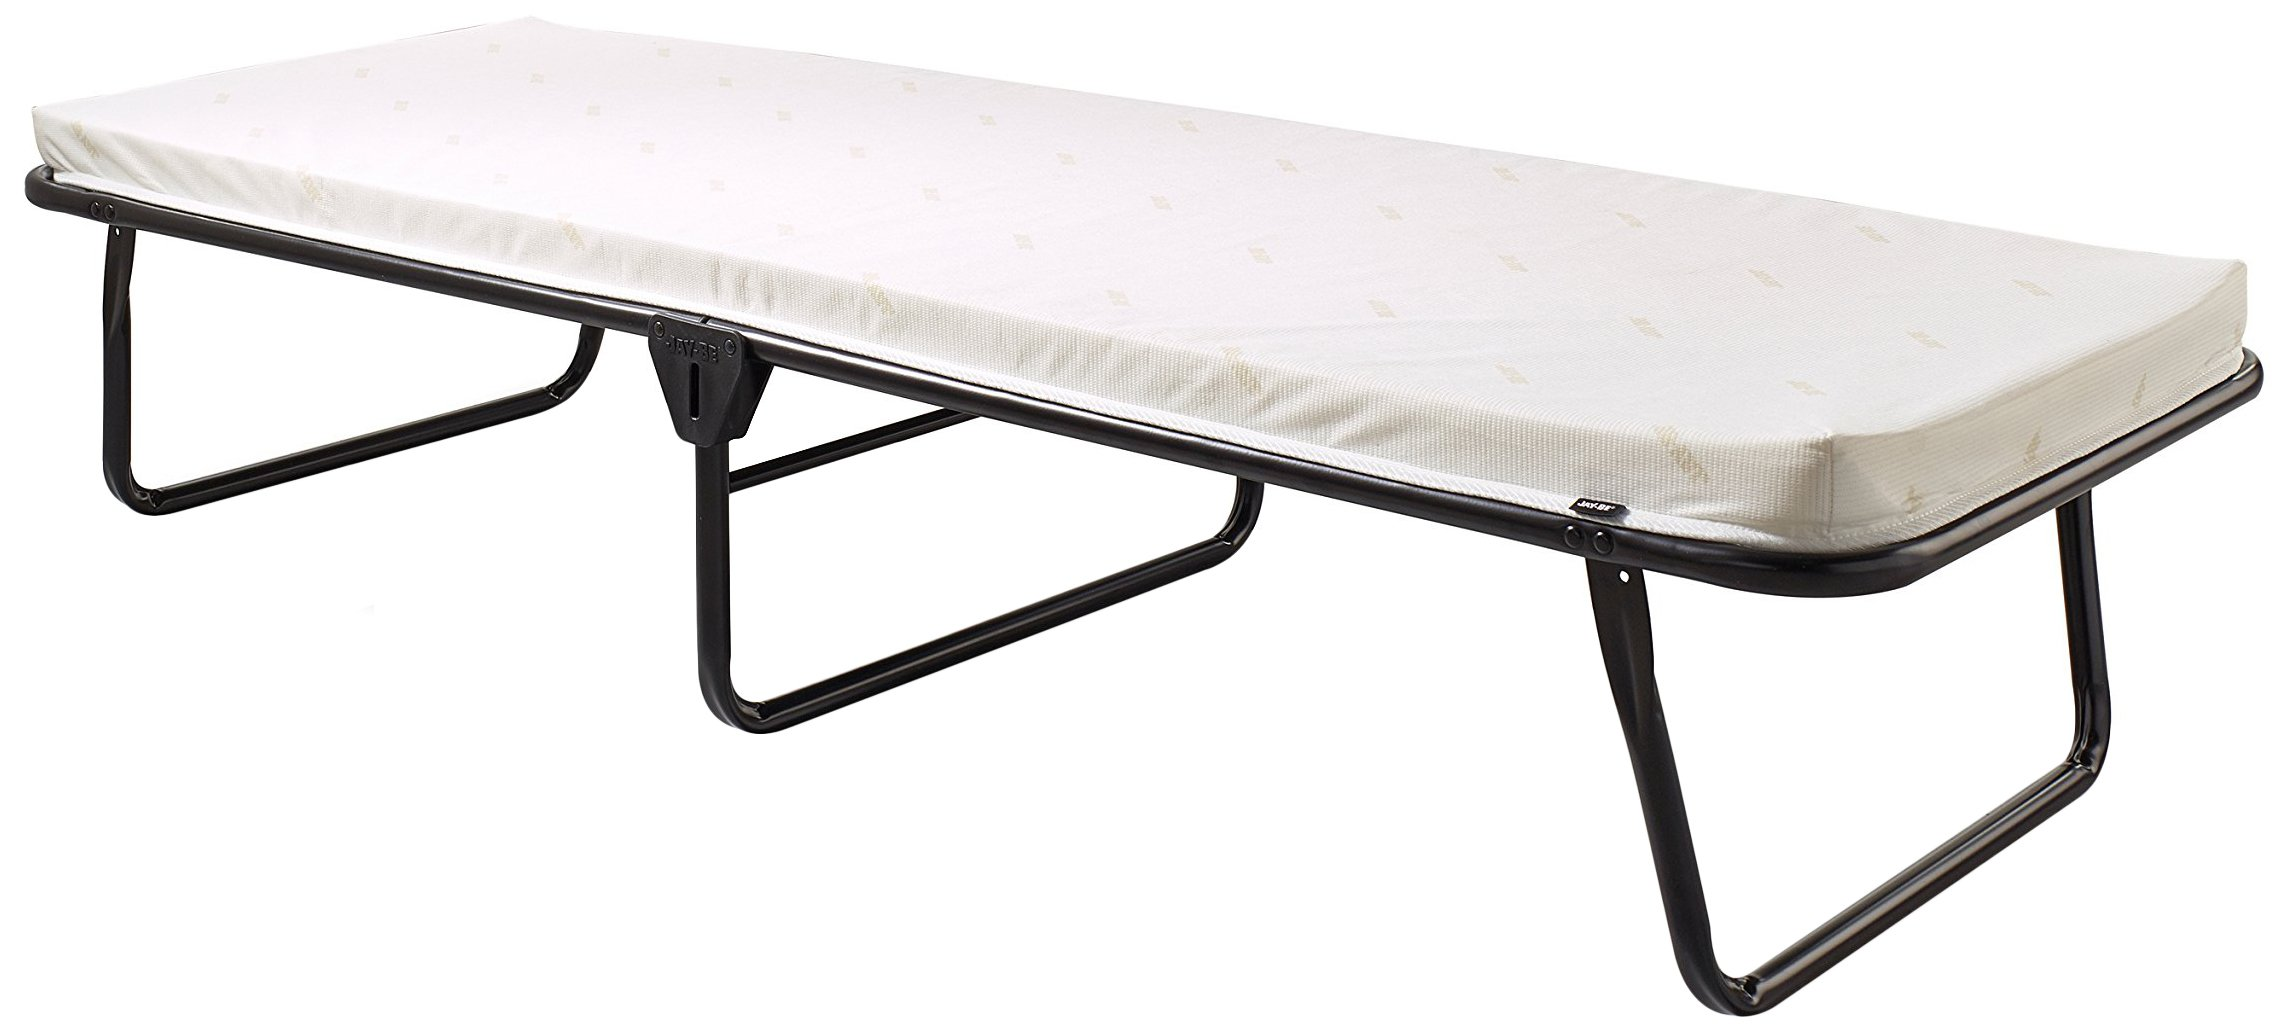 Jay-Be Saver Folding Bed with Airflow Mattress, Regular, Black/White by Jay-Be